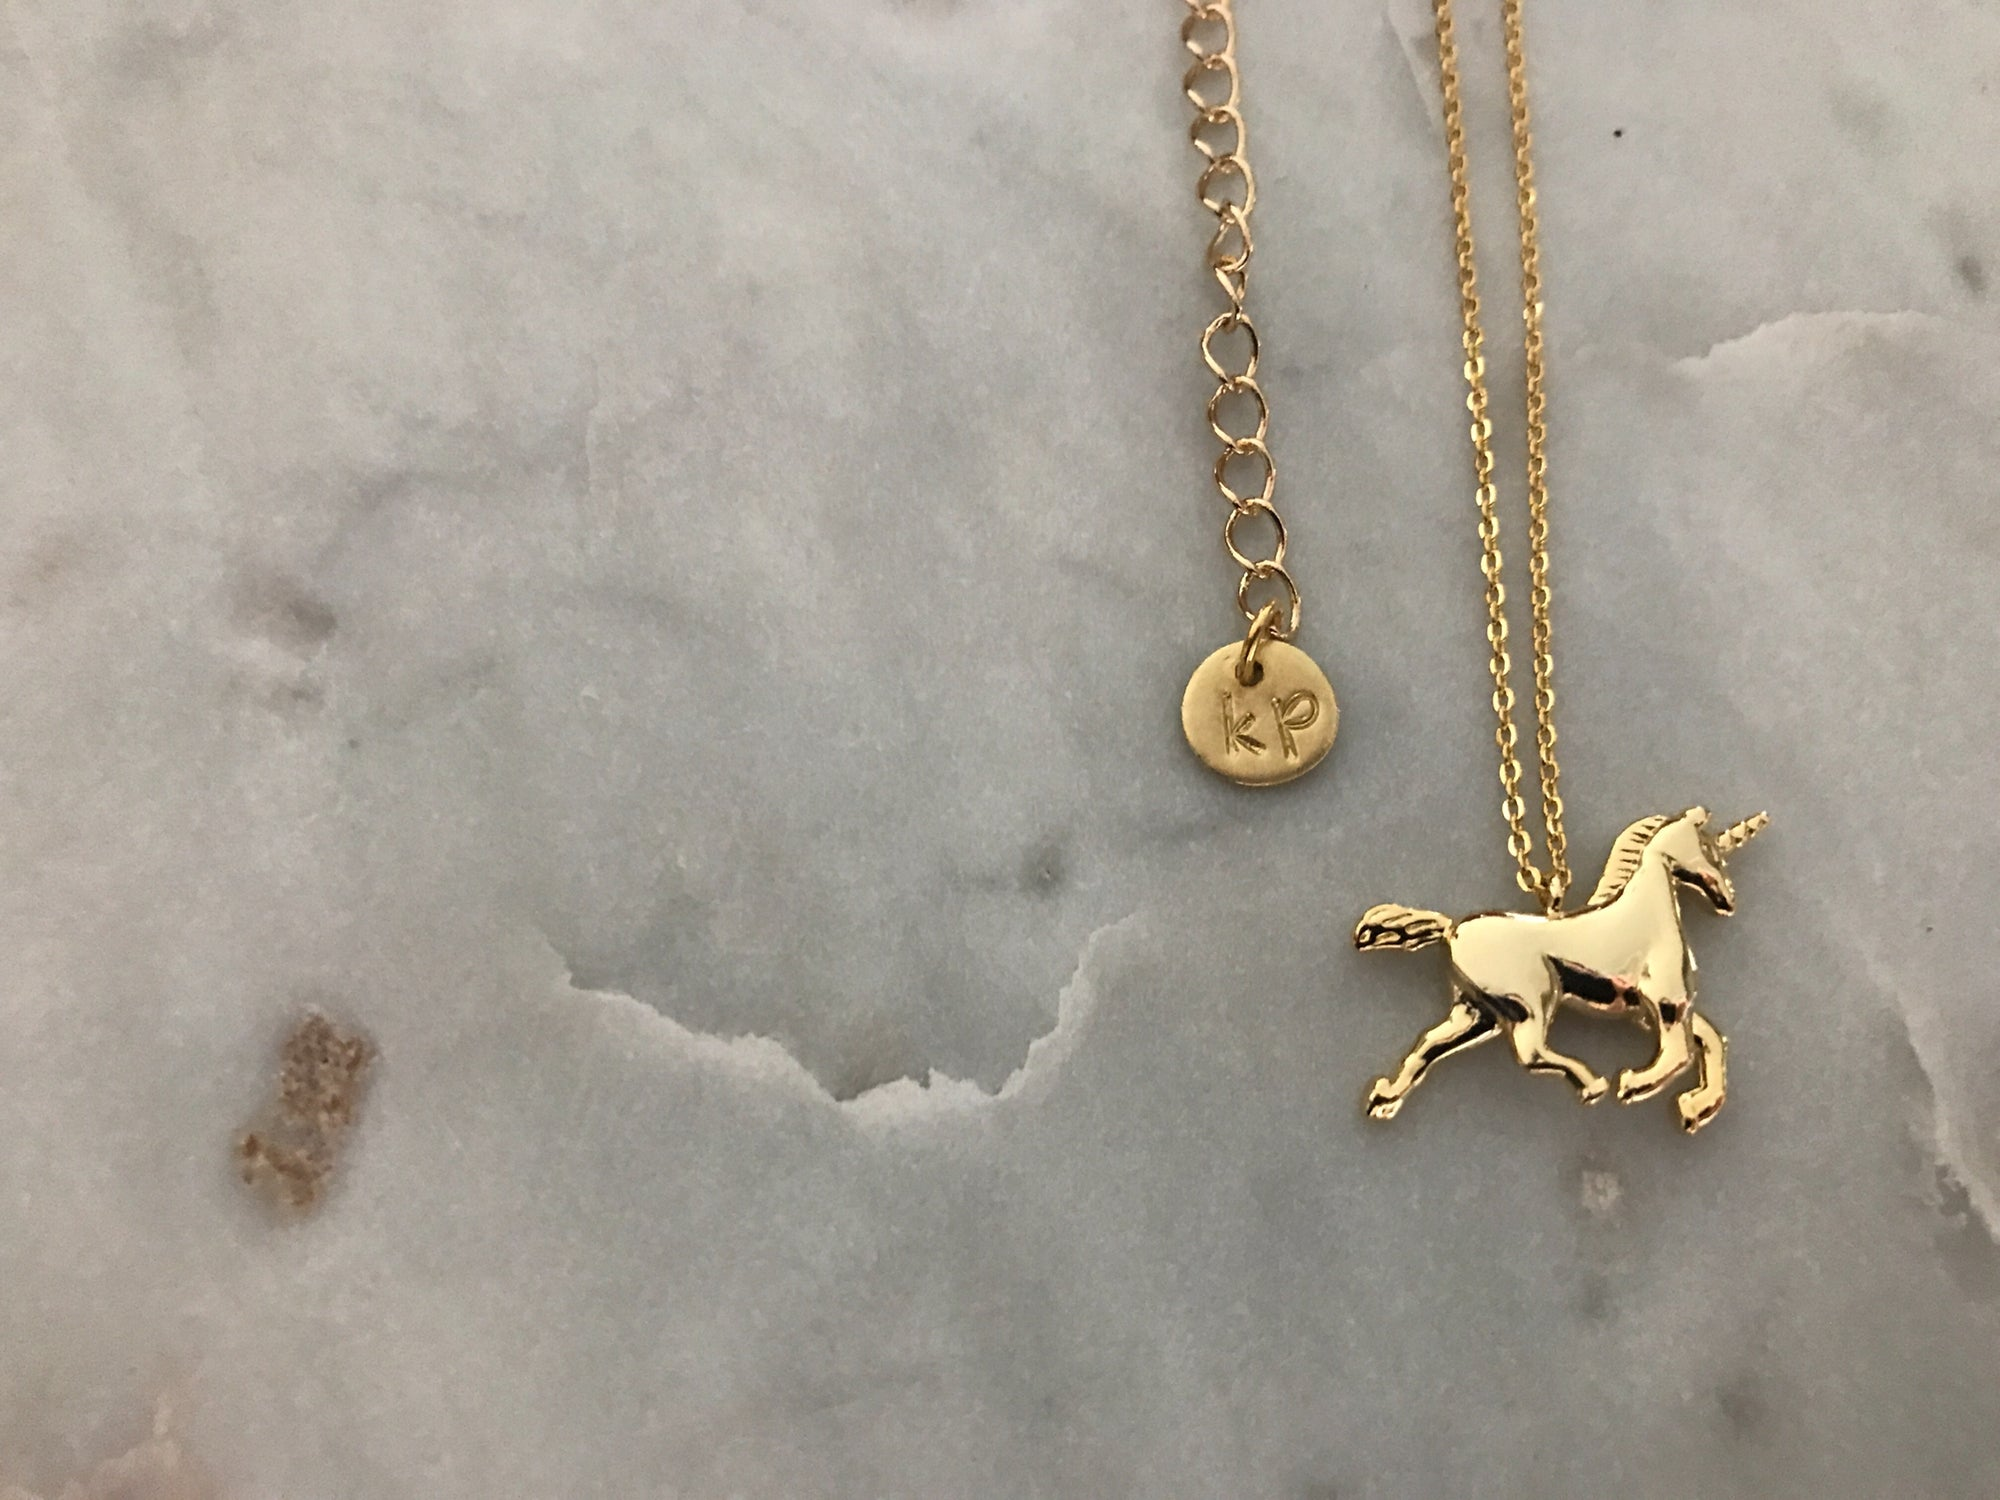 gold patterned chain choker, gold plated chain, gold plated choker, gold necklace, gold choker,gold linked chain, likned chain choker, thick choker chain,gold chain choker necklace,gold chain choker set,gold plated brass choker,dainty gold chain choker, unicorn choker, unicorn necklace, unicorn charms, unicorn chains, unicorn jewelry, unicorn choker necklace, unicorn chokers, unicorn charm choker, unicrn charm necklace